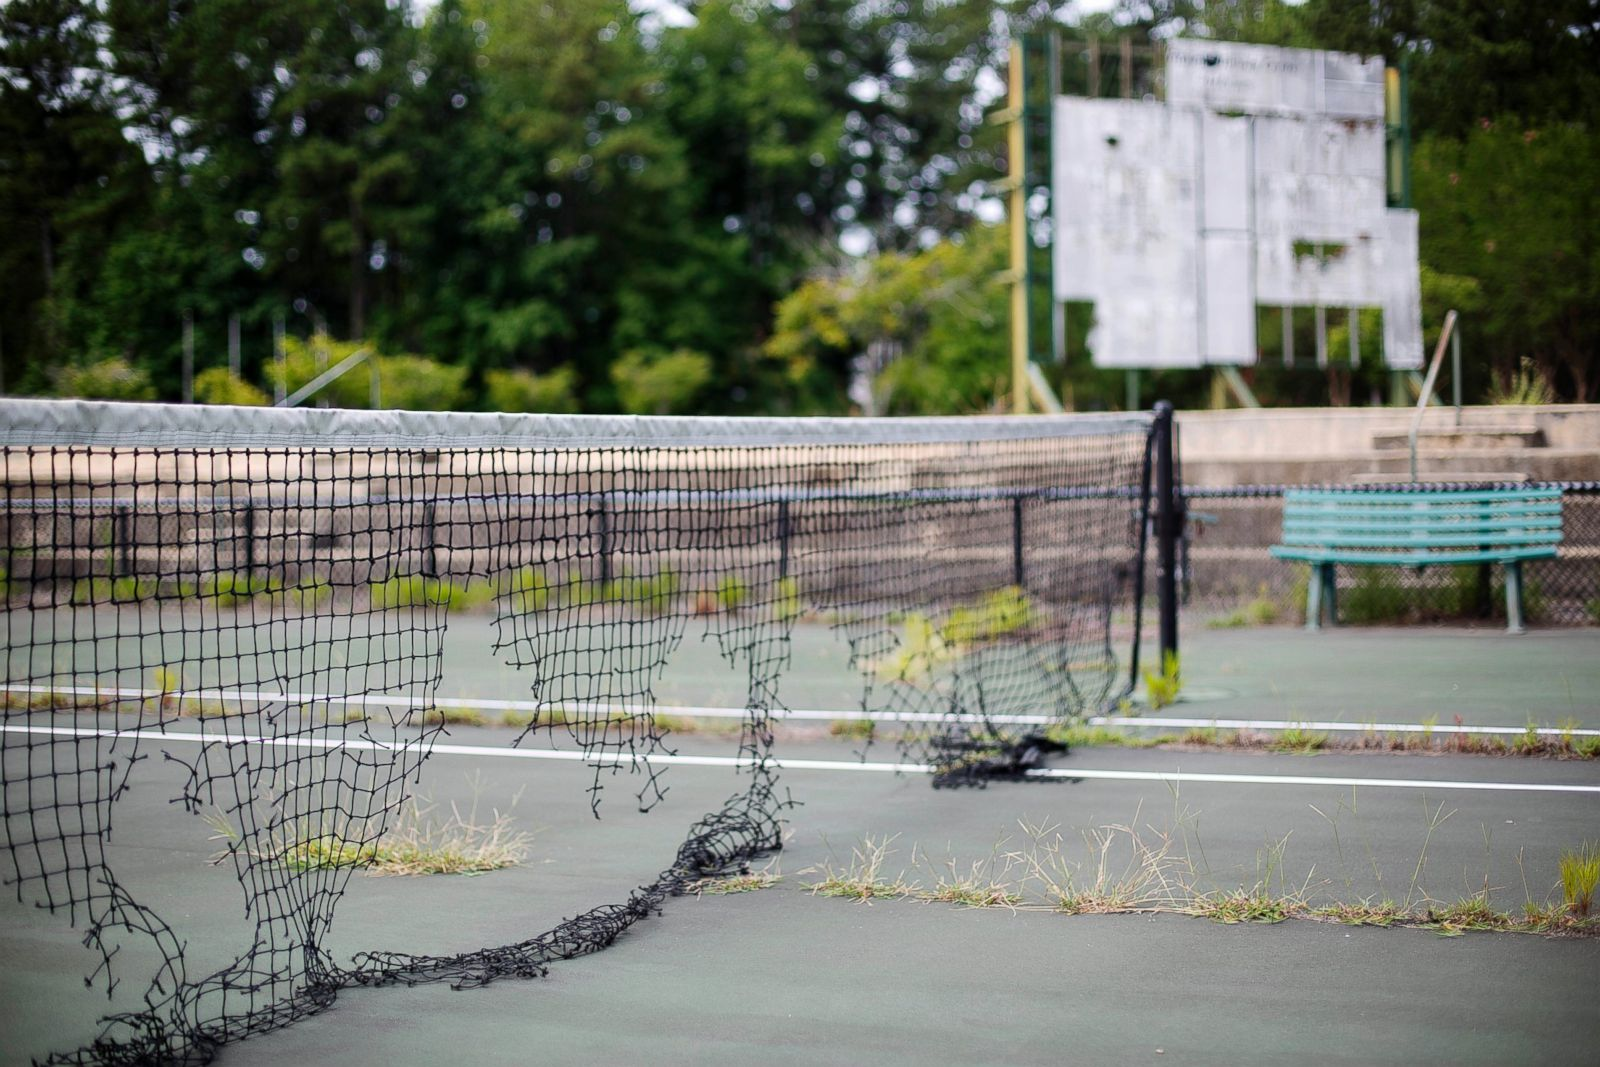 Abandoned Olympic Venues Around The Globe Photos ABC News - Eerie abandoned olympic venues around the world